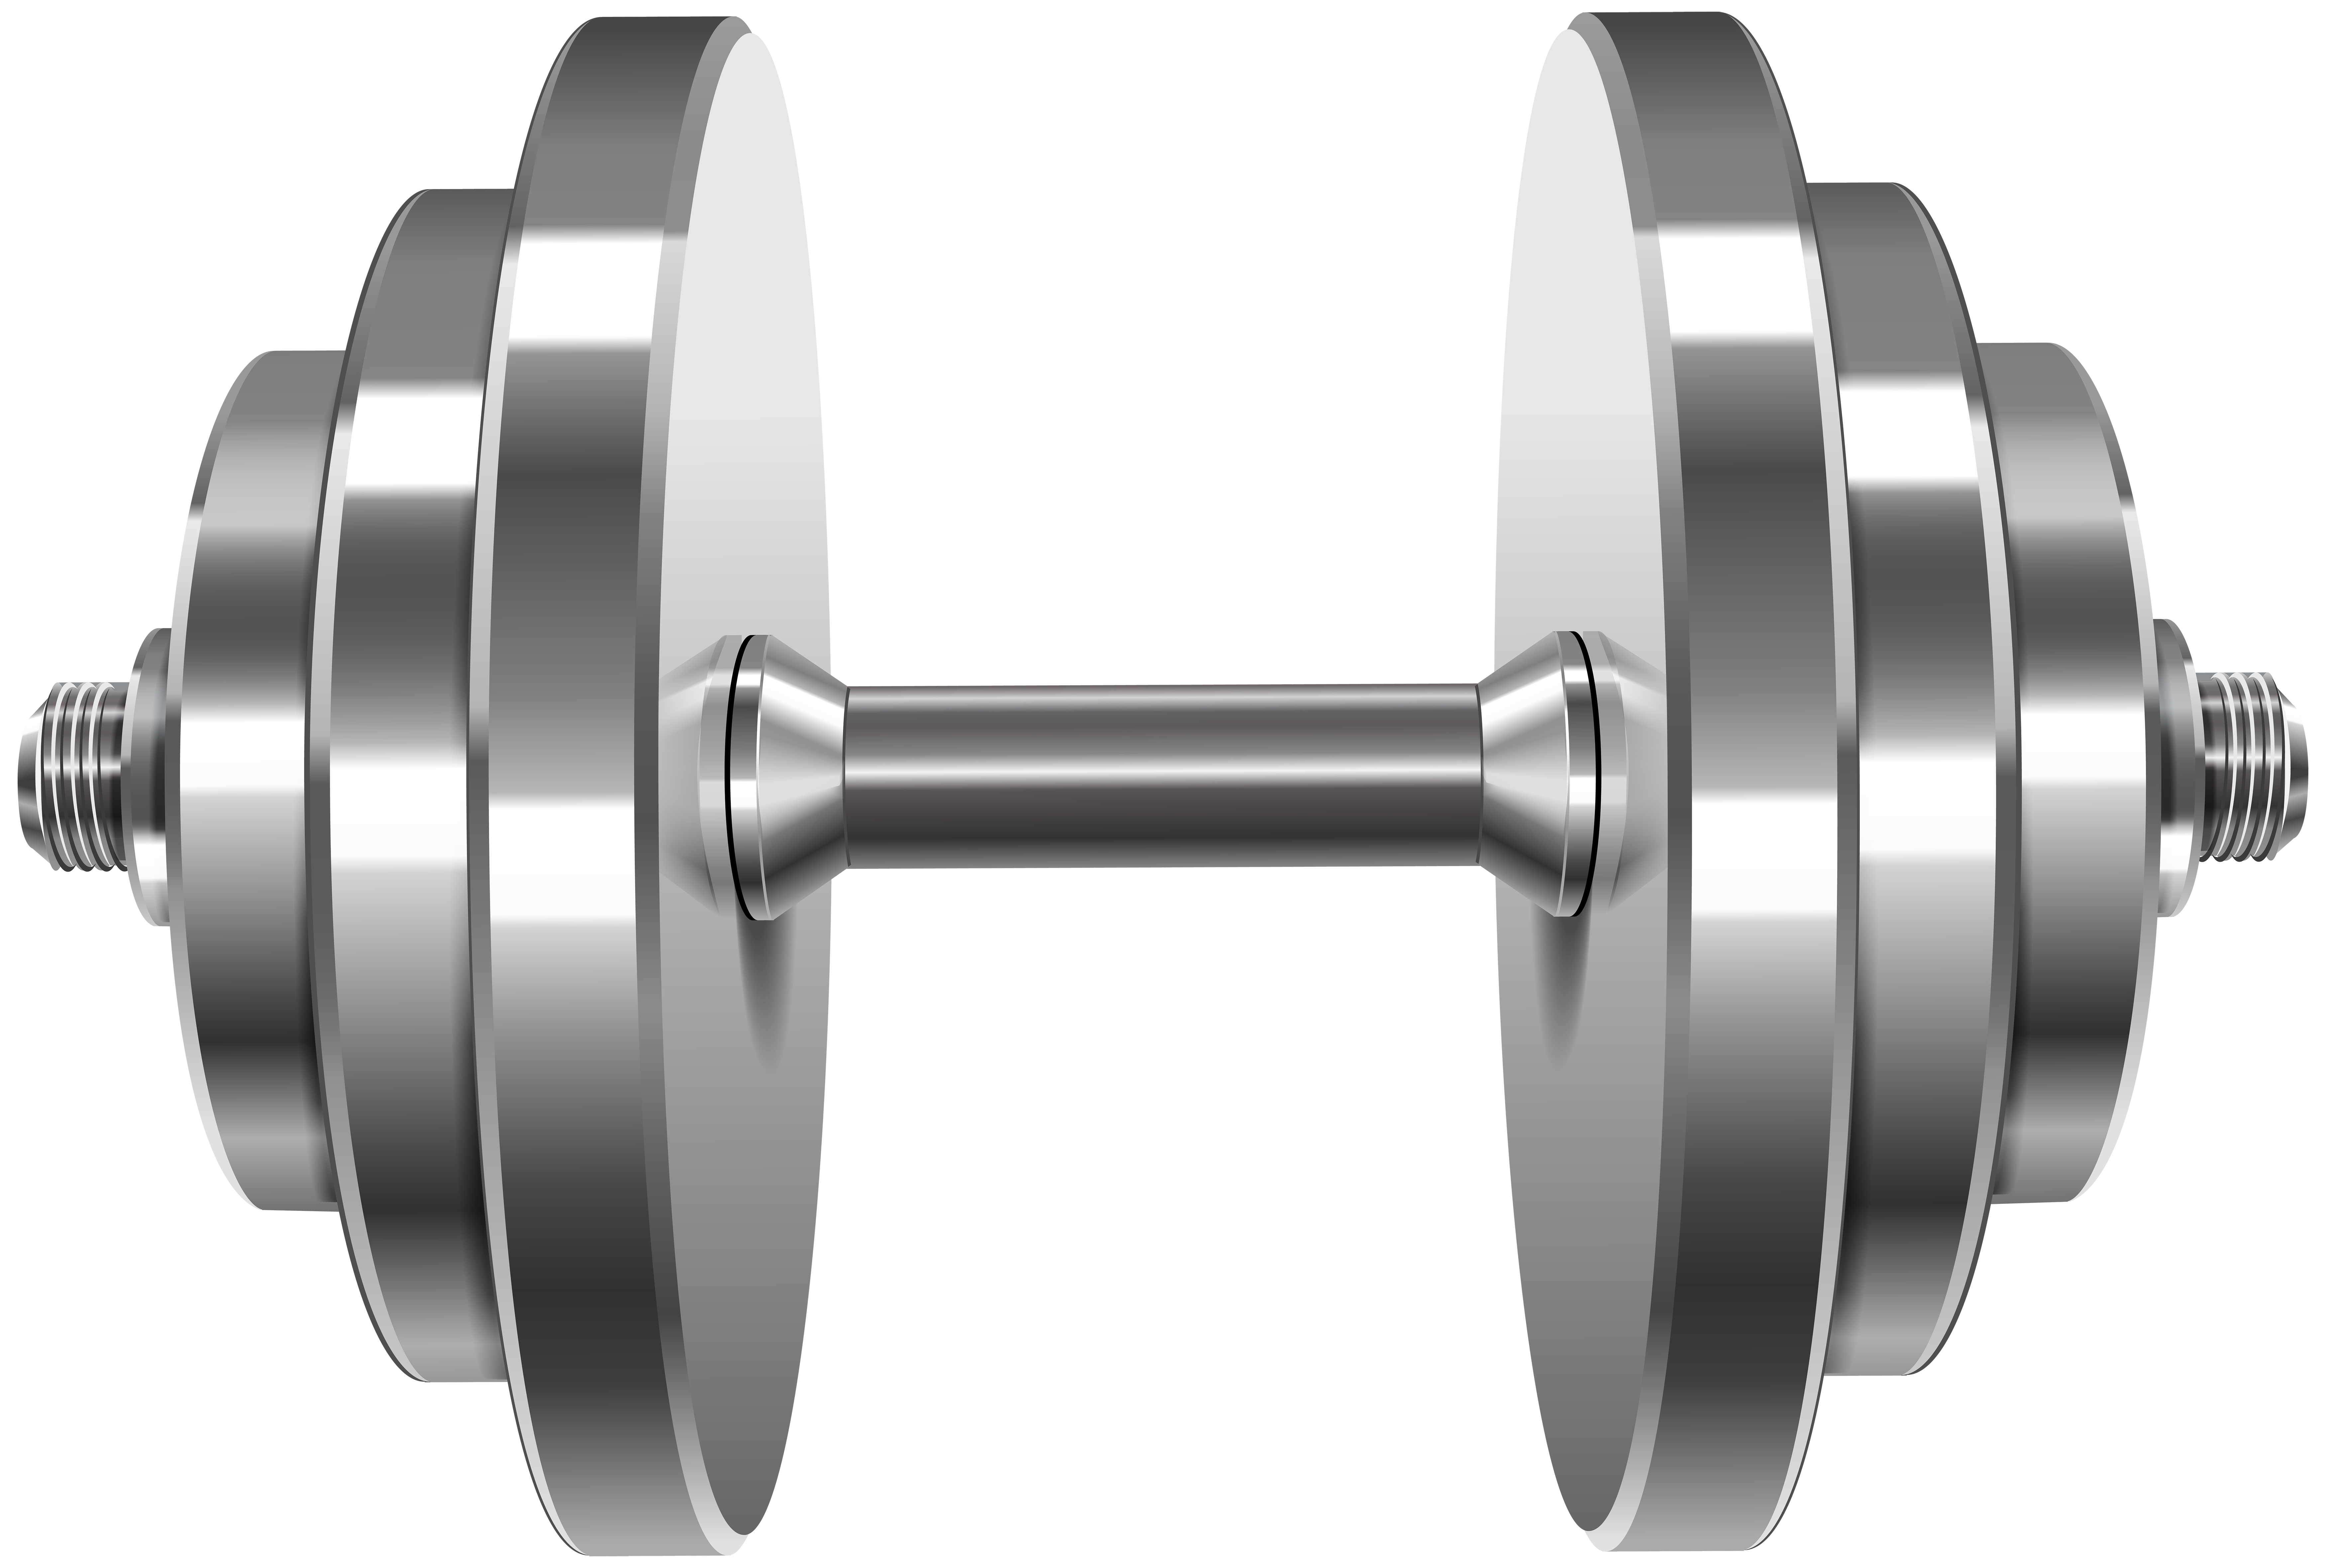 Dumbbell clipart wieght. Weight set free png